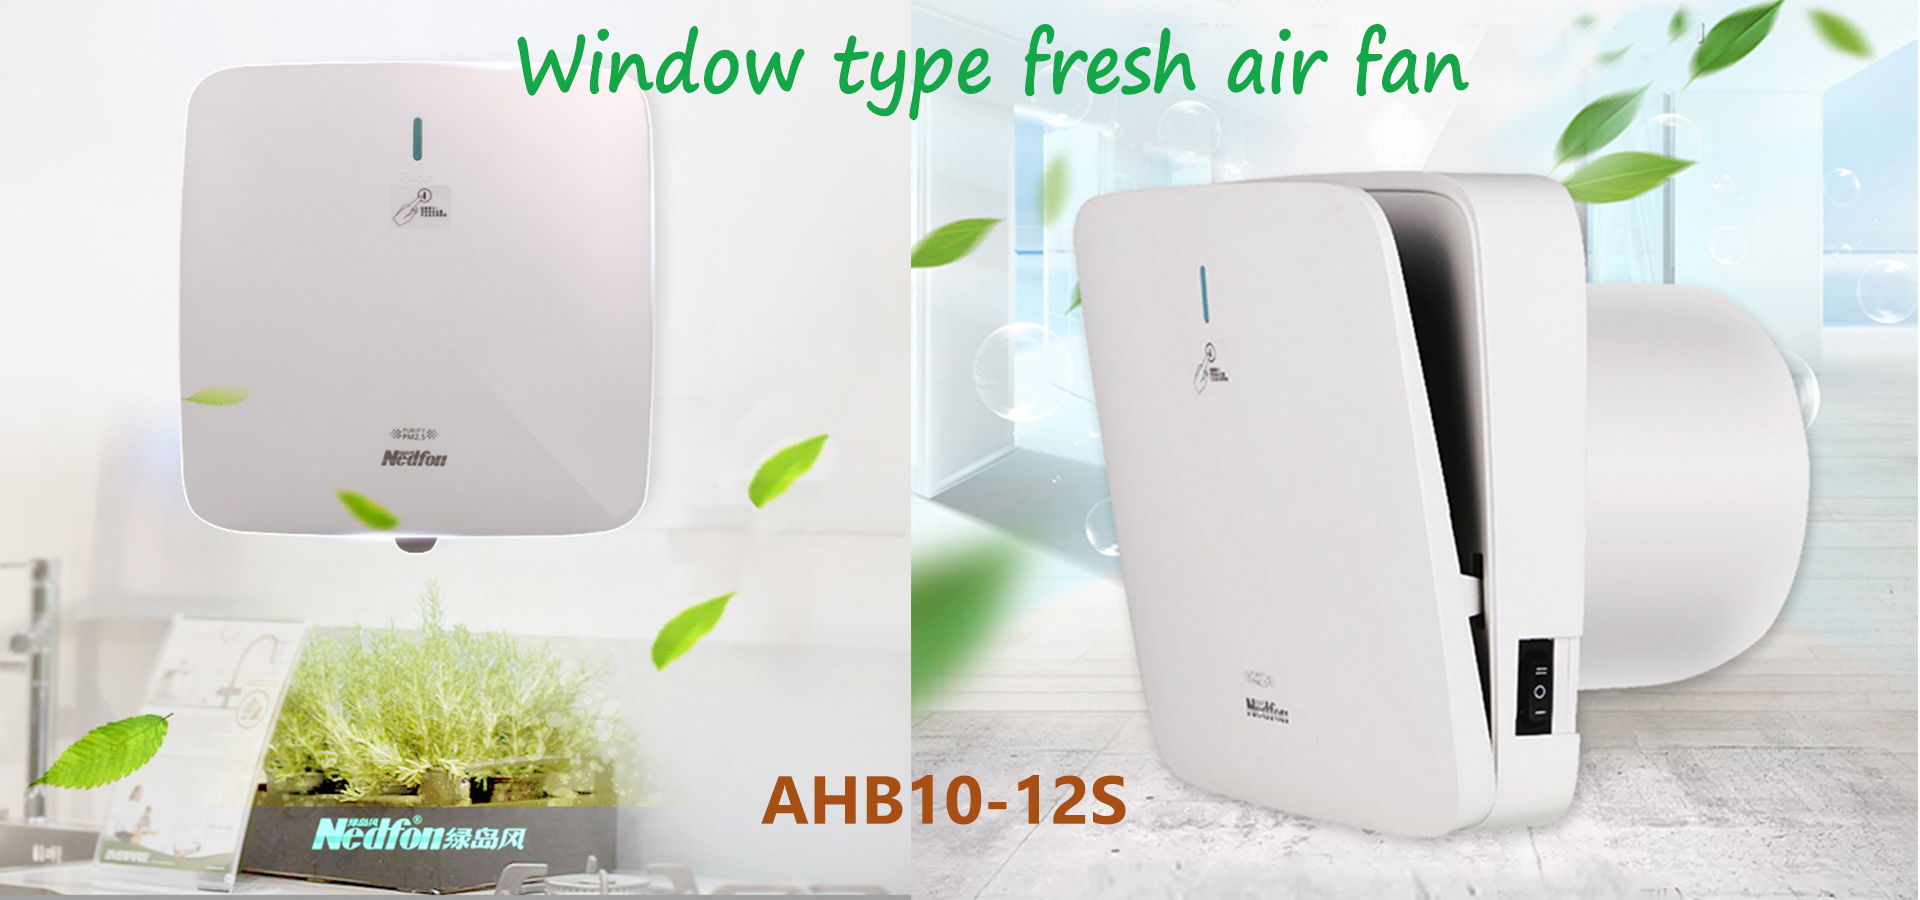 window-type-fresh-air-fan.jpg